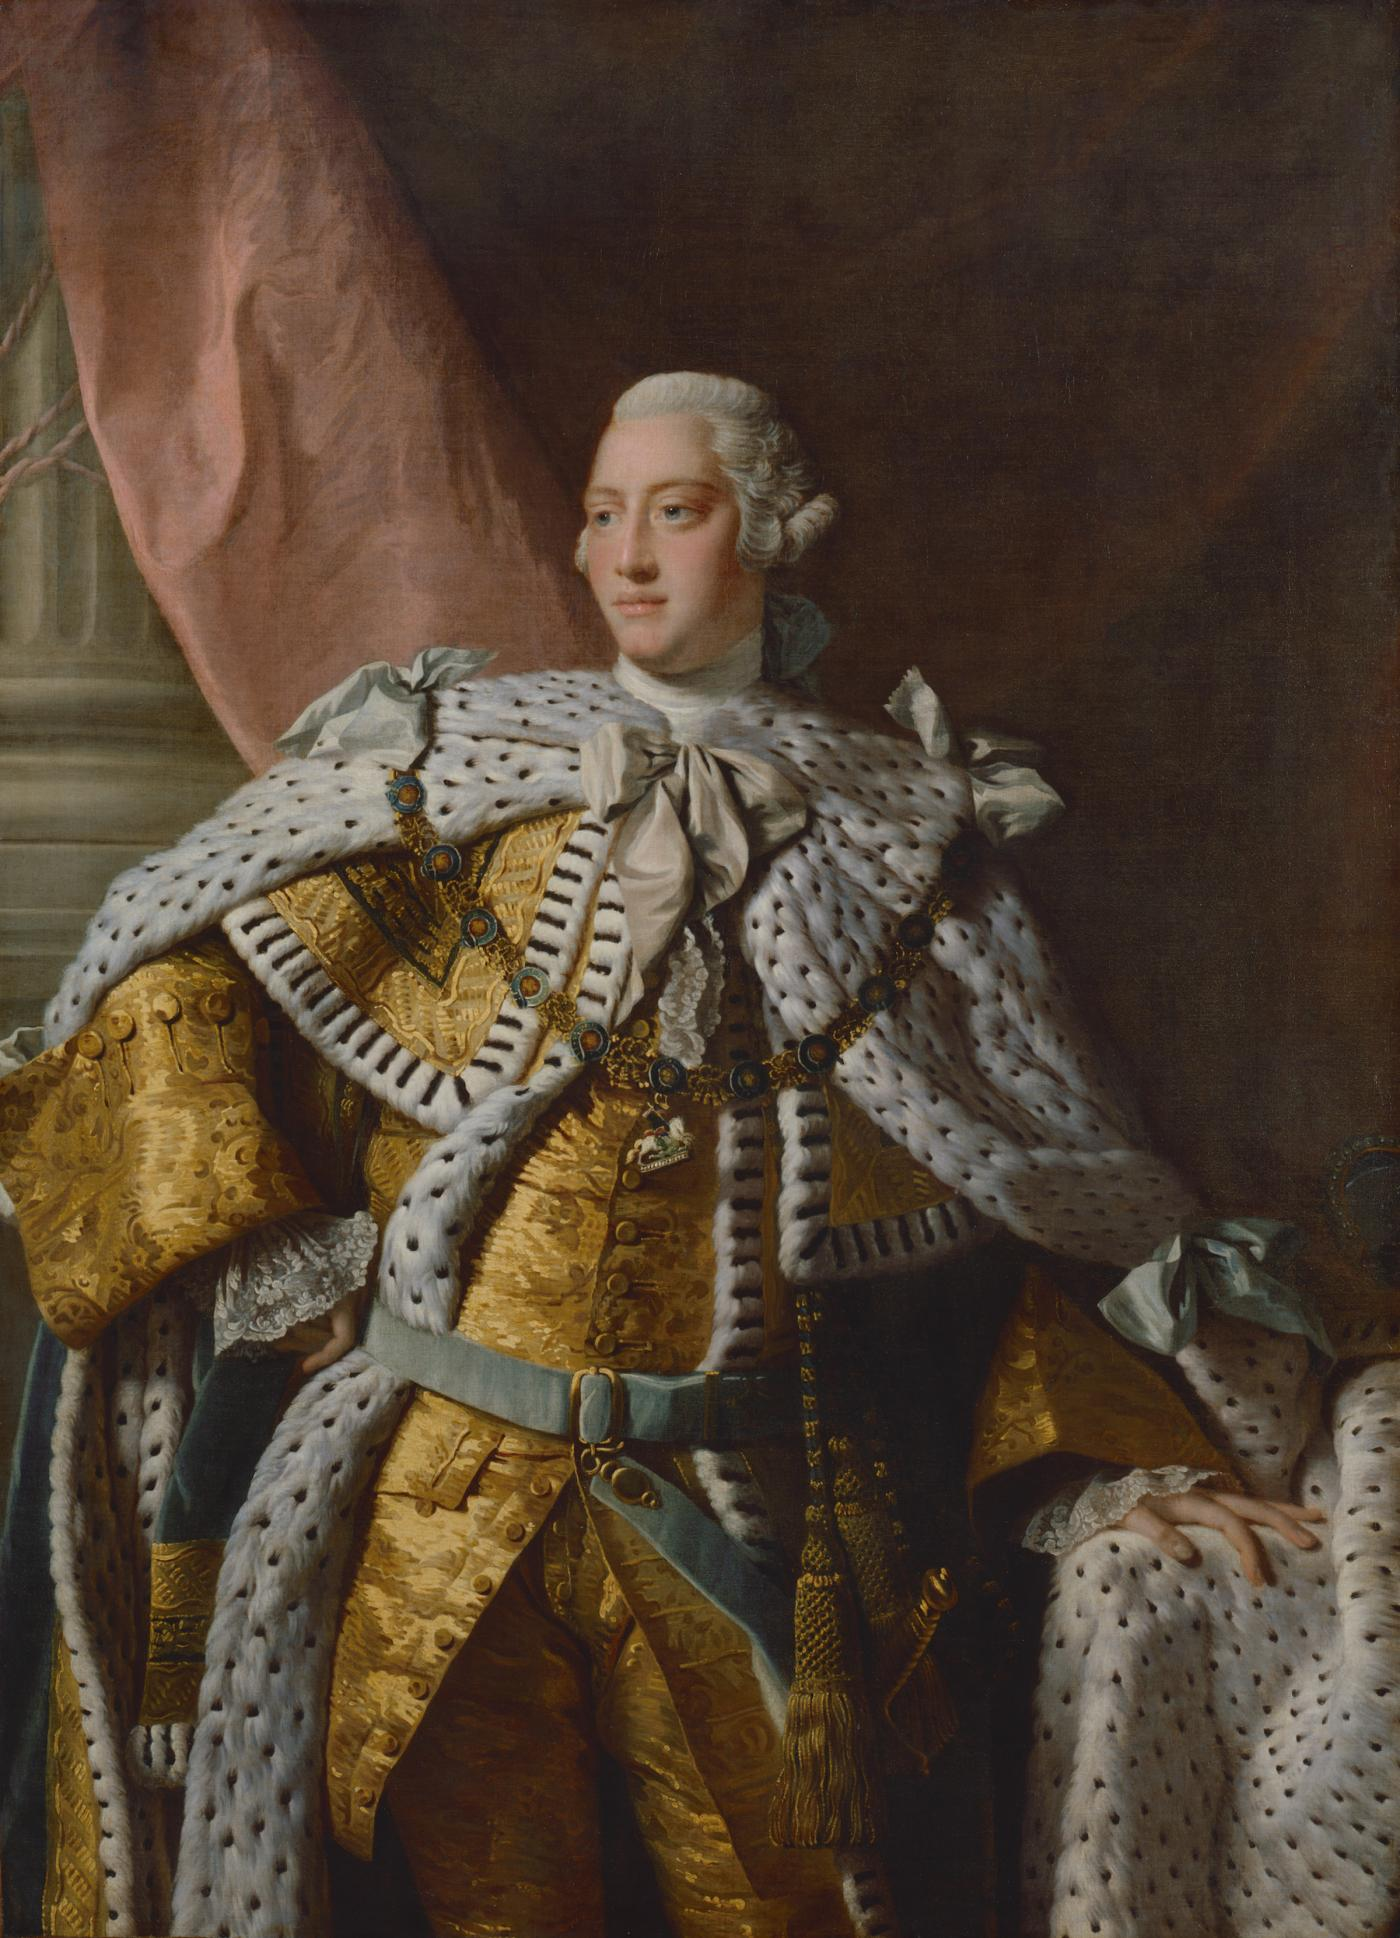 An image showing 'George III by studio of Allan Ramsay, based on a work of 1761-62'